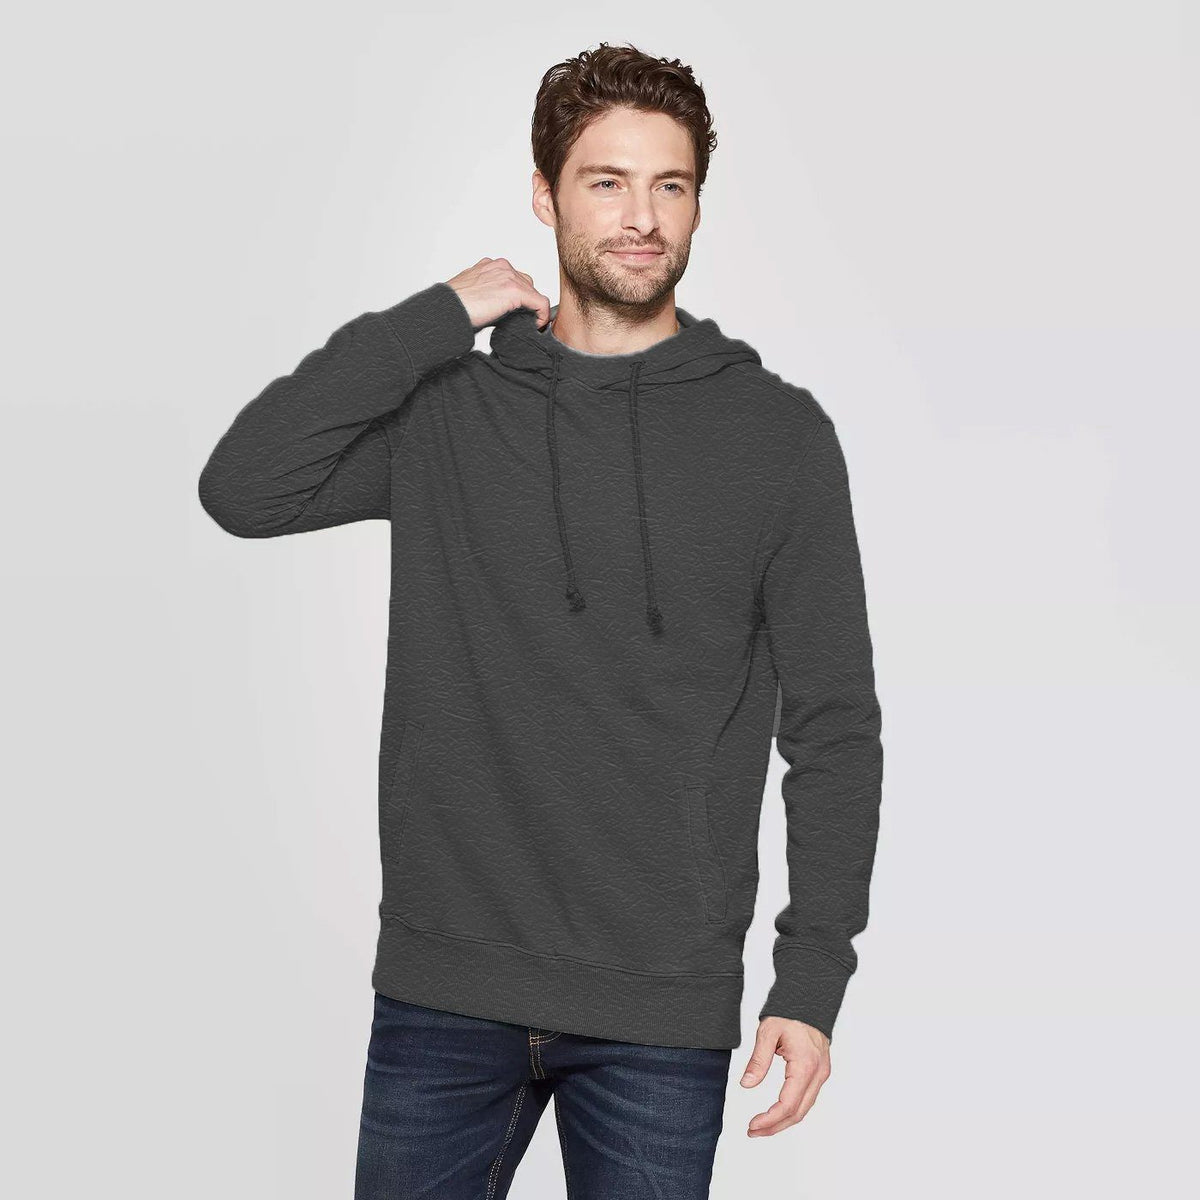 CR Men's 10-16A20 Terry Pullover Hoodie Men's Pullover Hoodie SRK Charcoal XS